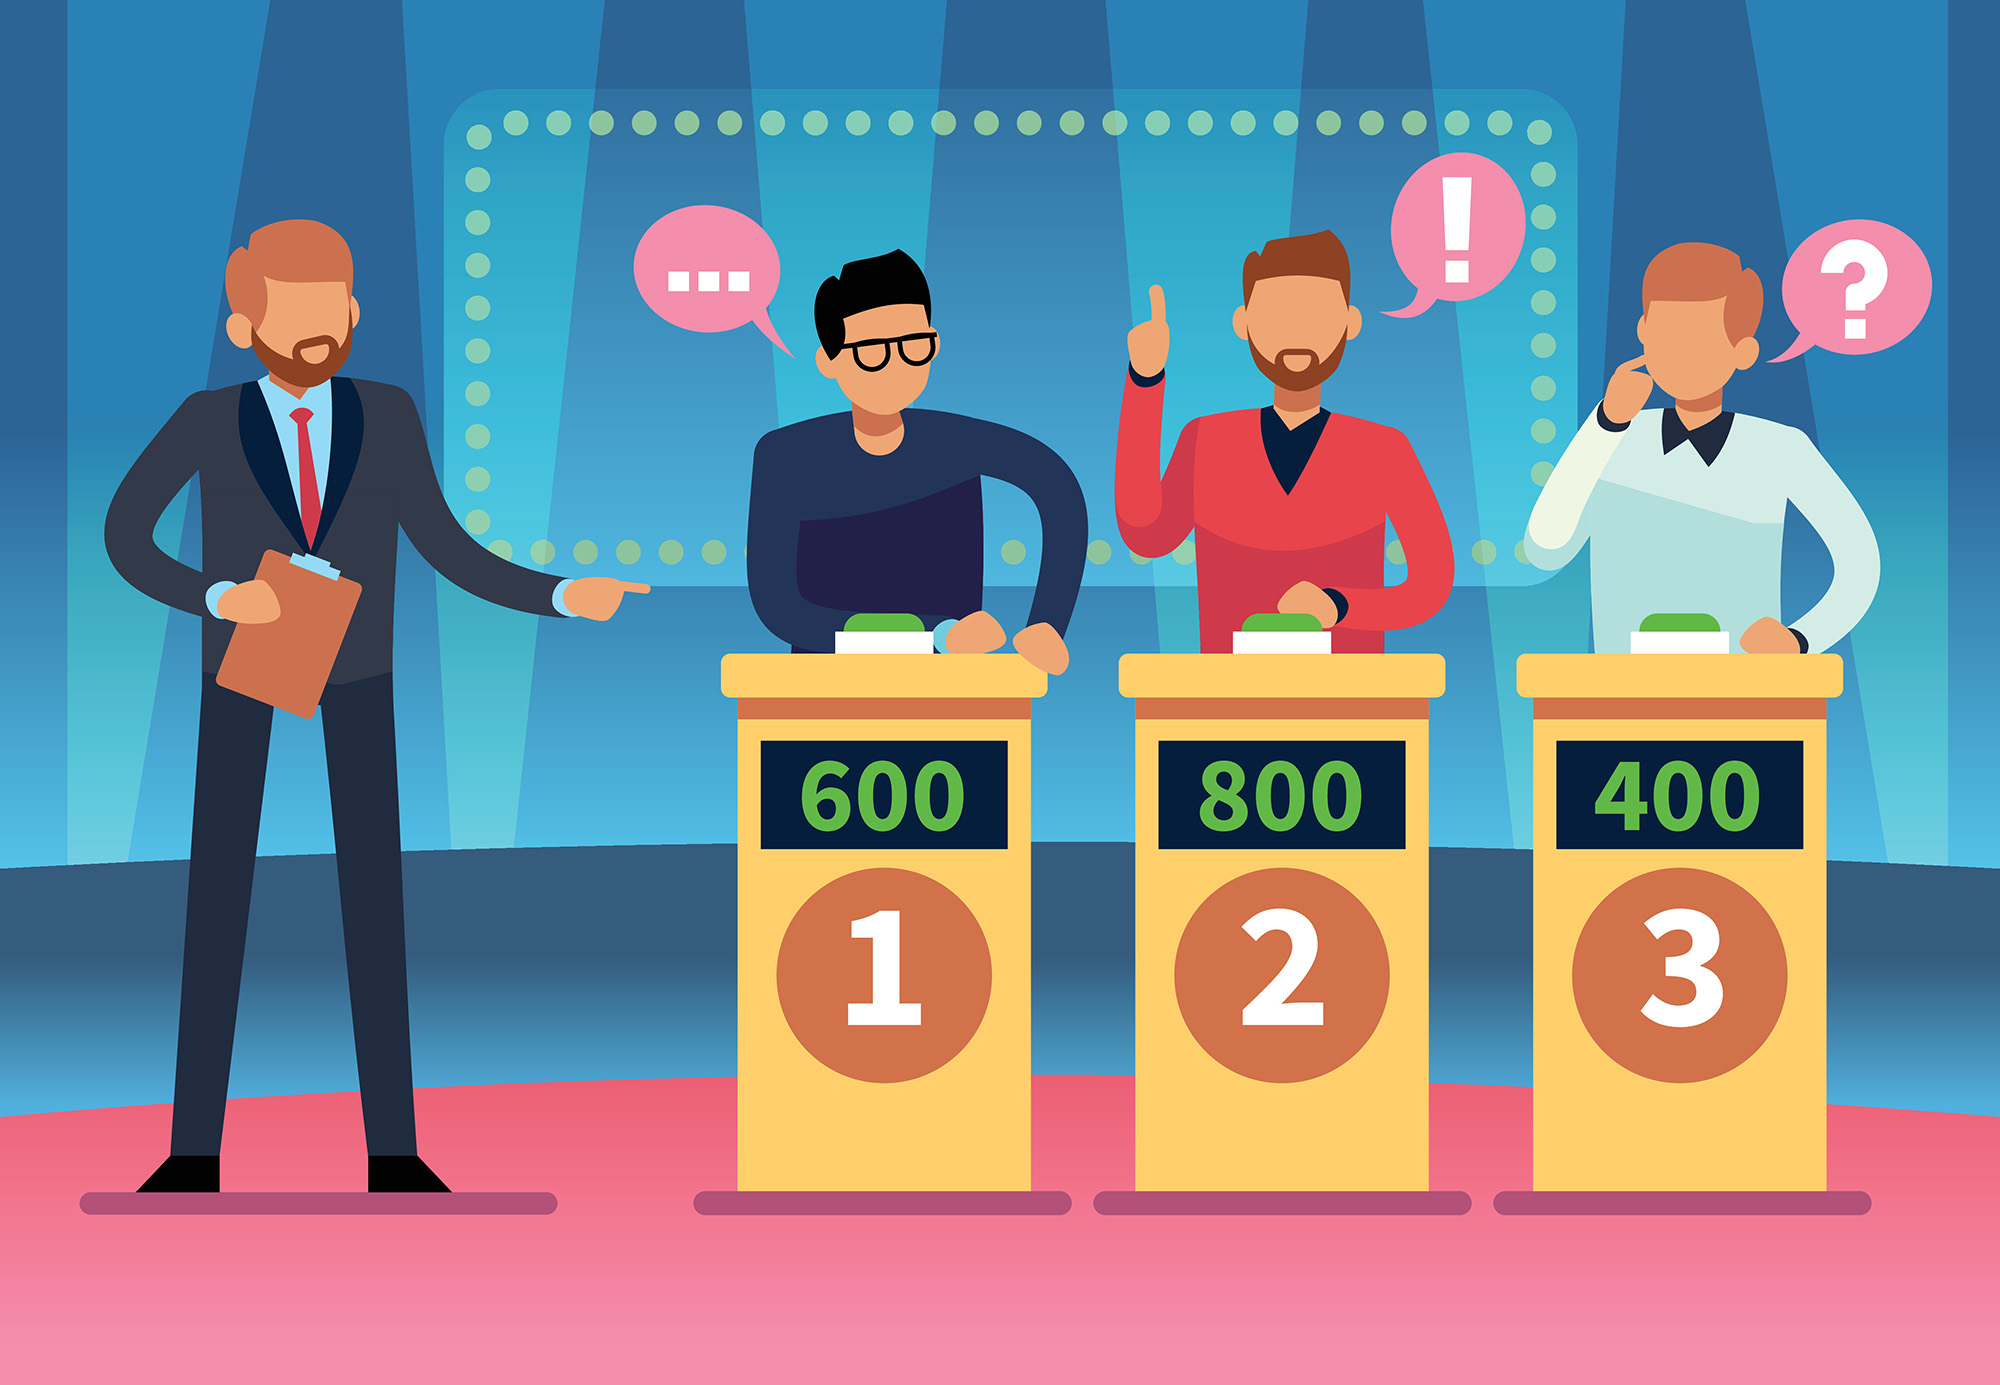 Illustration of a trivia game show host and three contestants.